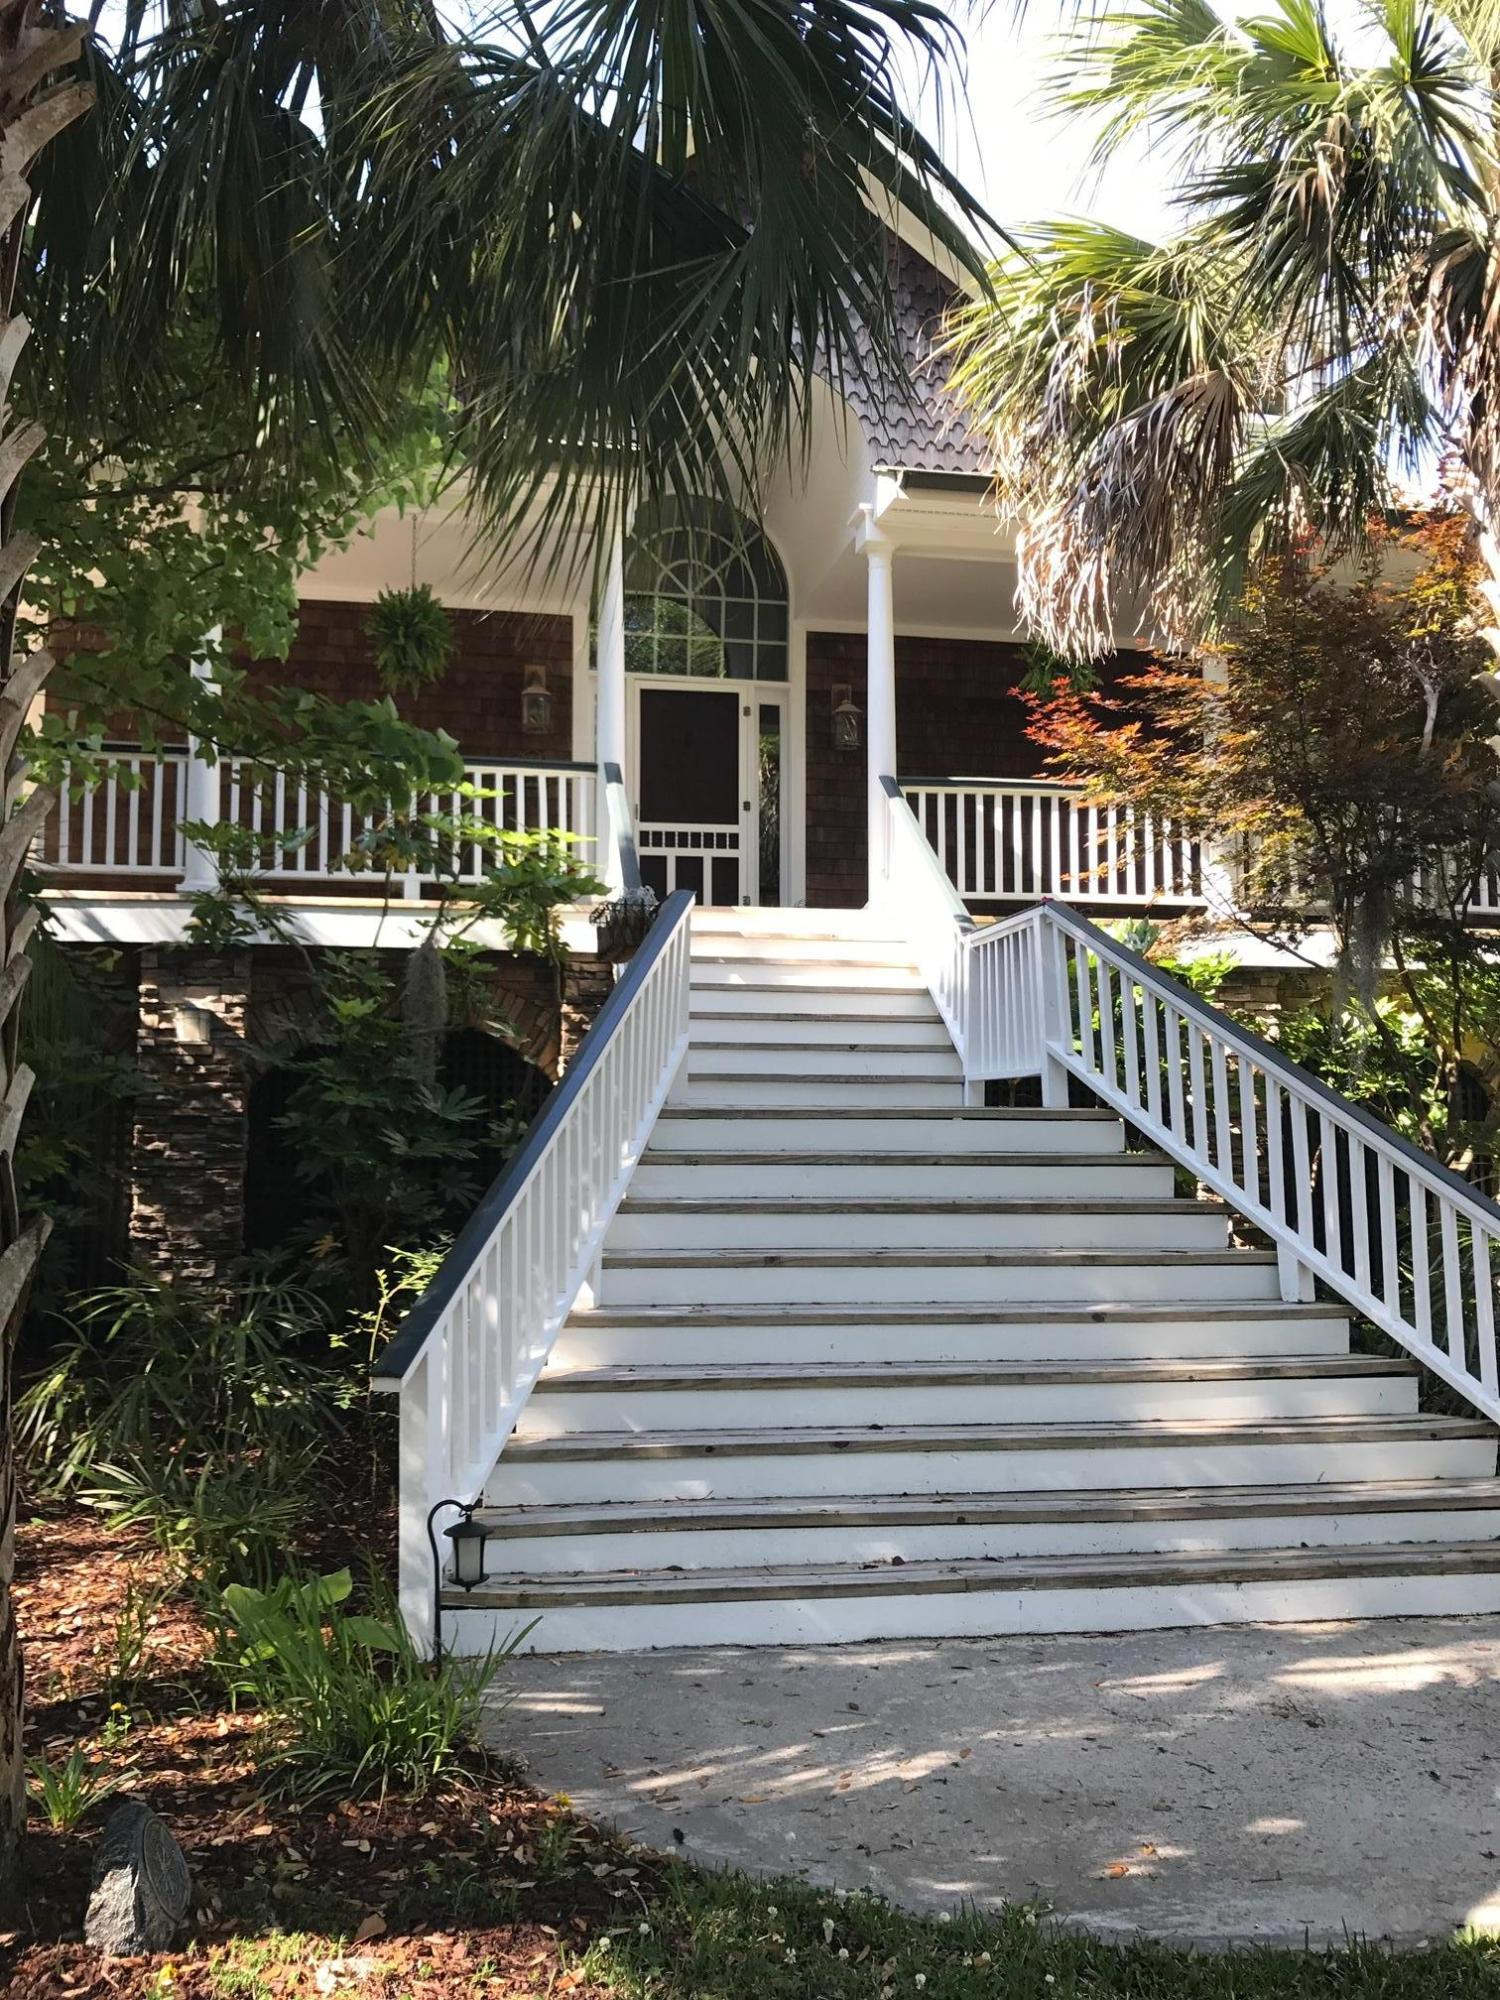 Wappoo Shores Homes For Sale - 1625 Mcclain, Charleston, SC - 3